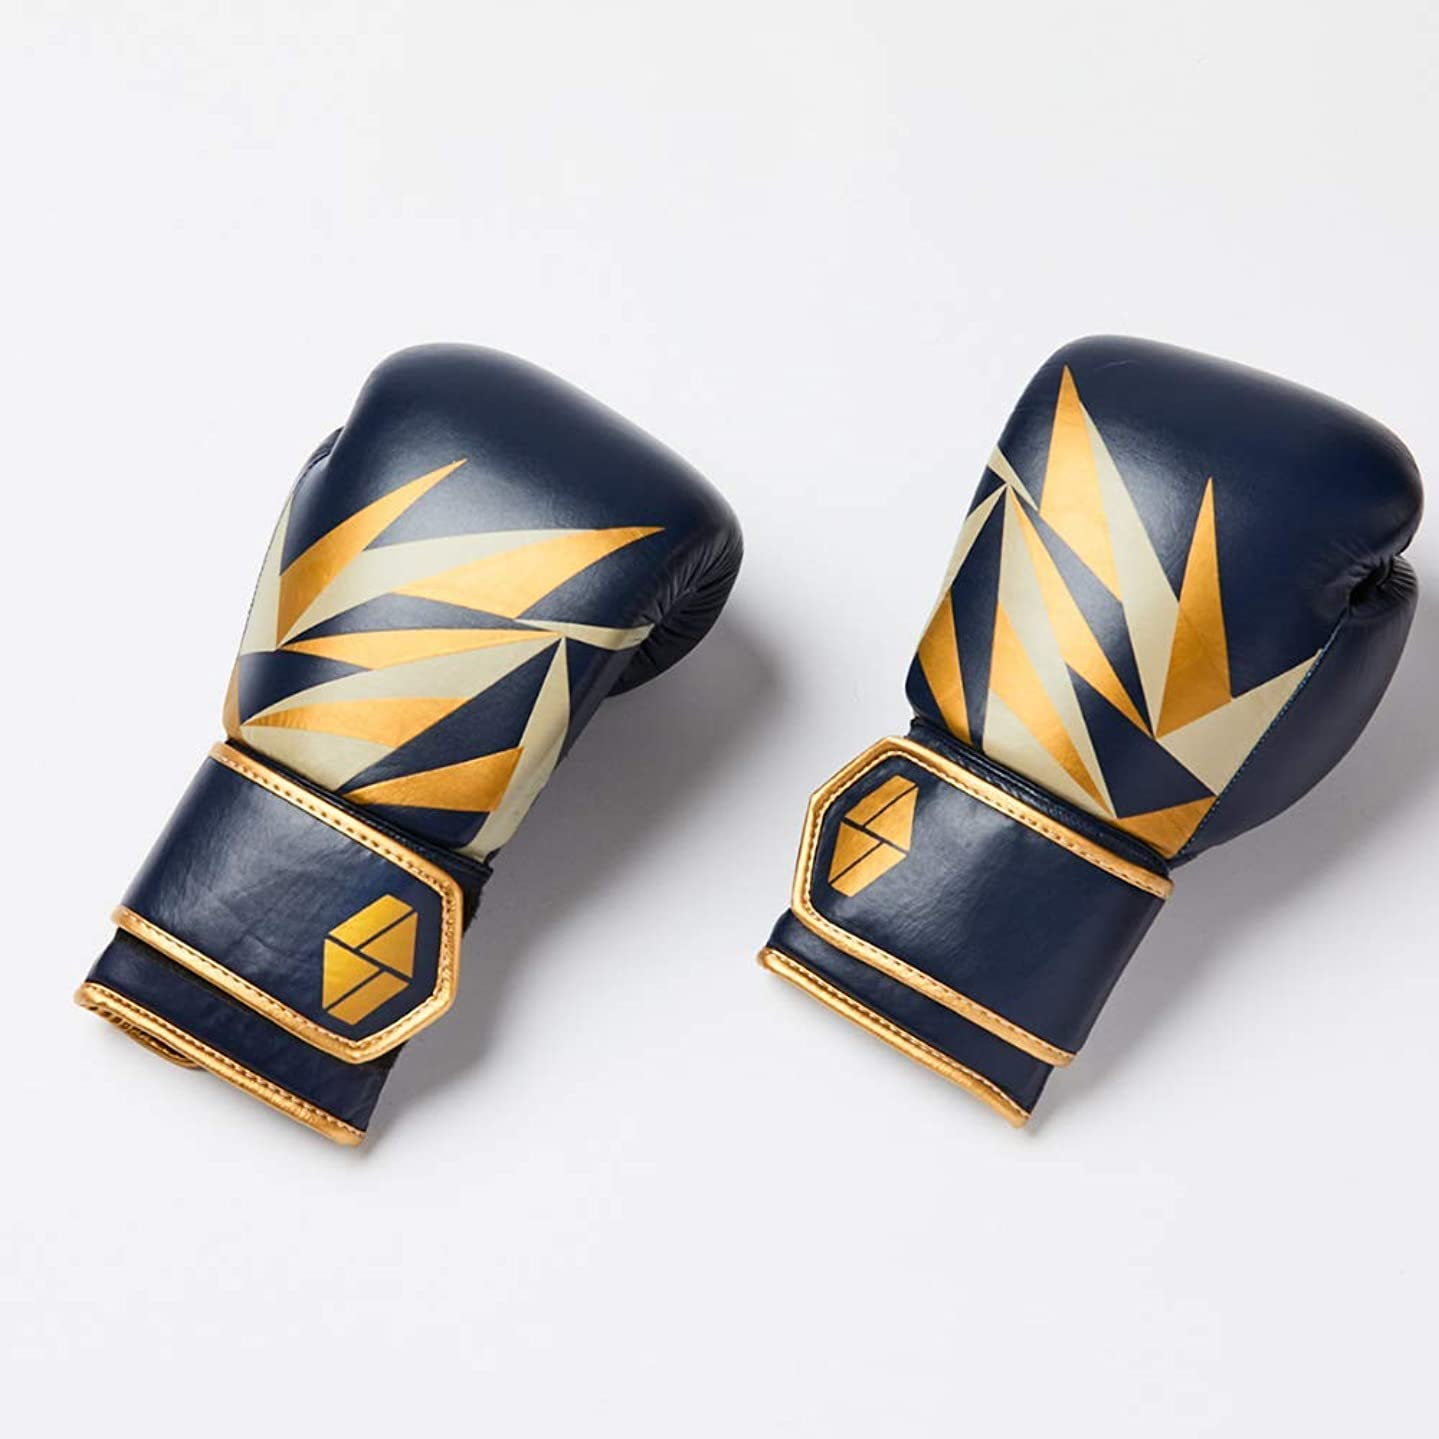 Society Nine Bia Boxing Gloves, 16 oz | Lightweight & Premium Leather, Velco Closure, Foam Construction | Ideal for Sparring, Heavy Bag, Mitt Work